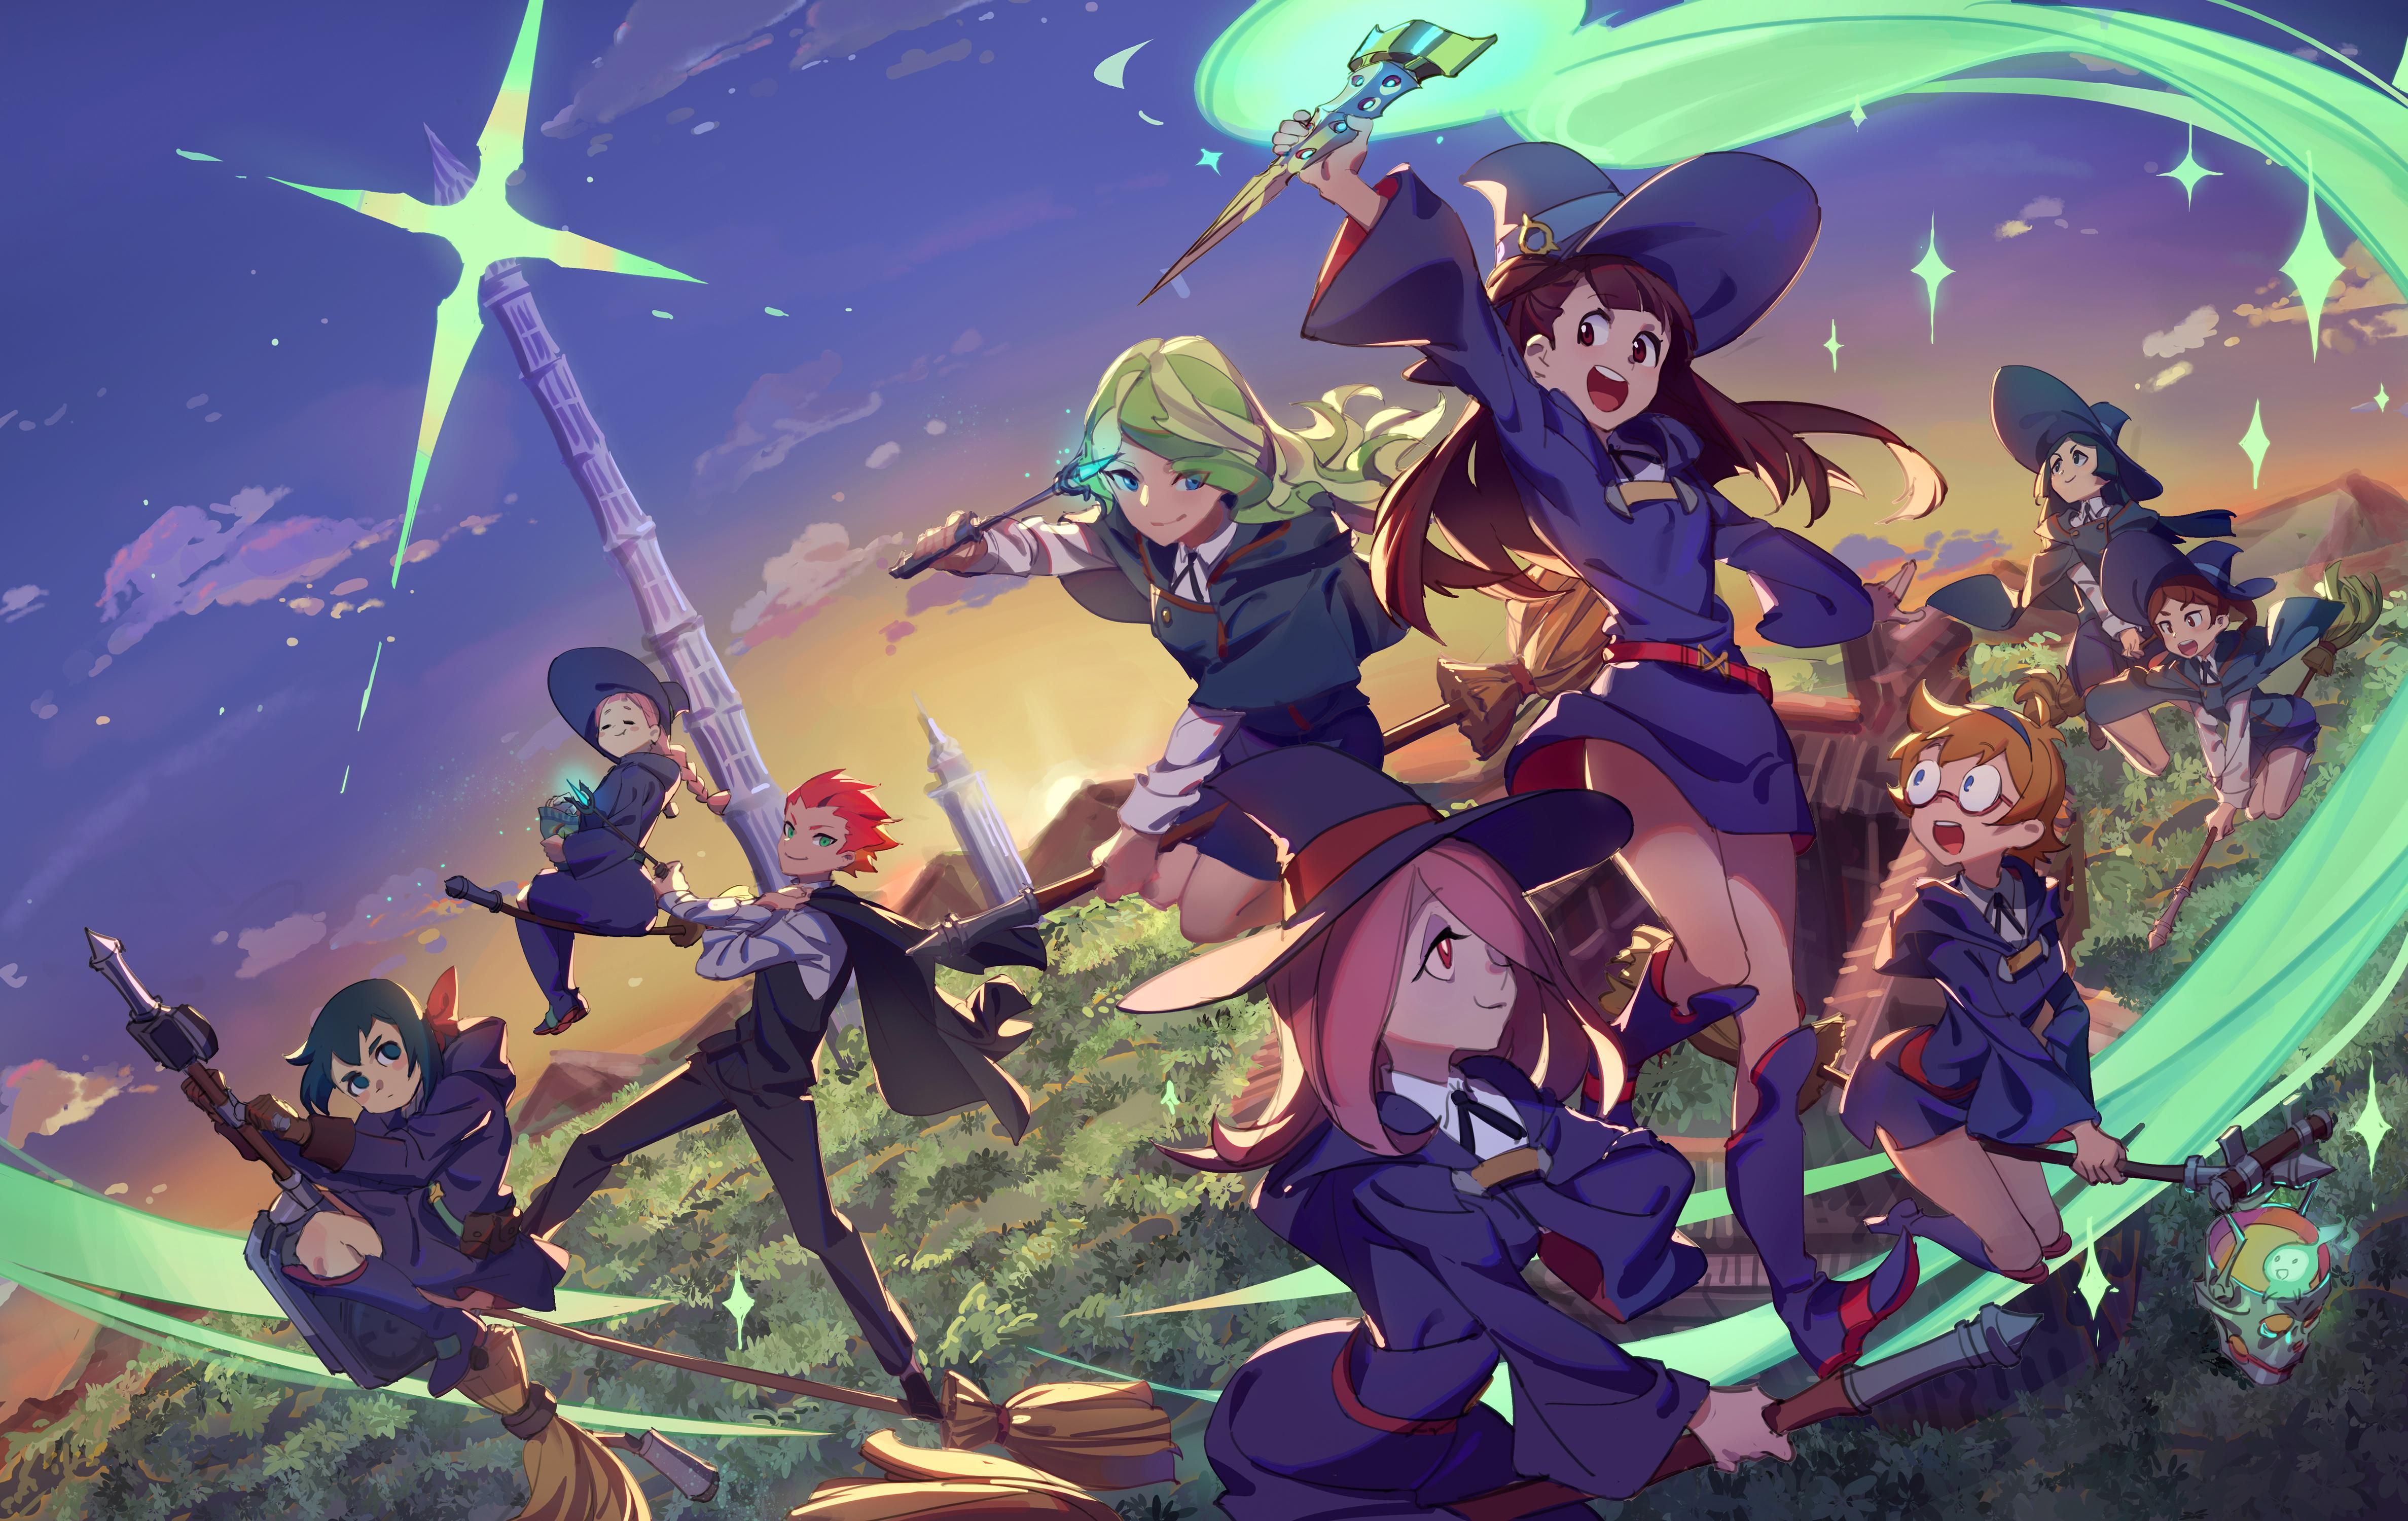 Little Witch Academia [1920x1080] Music IndieArtist